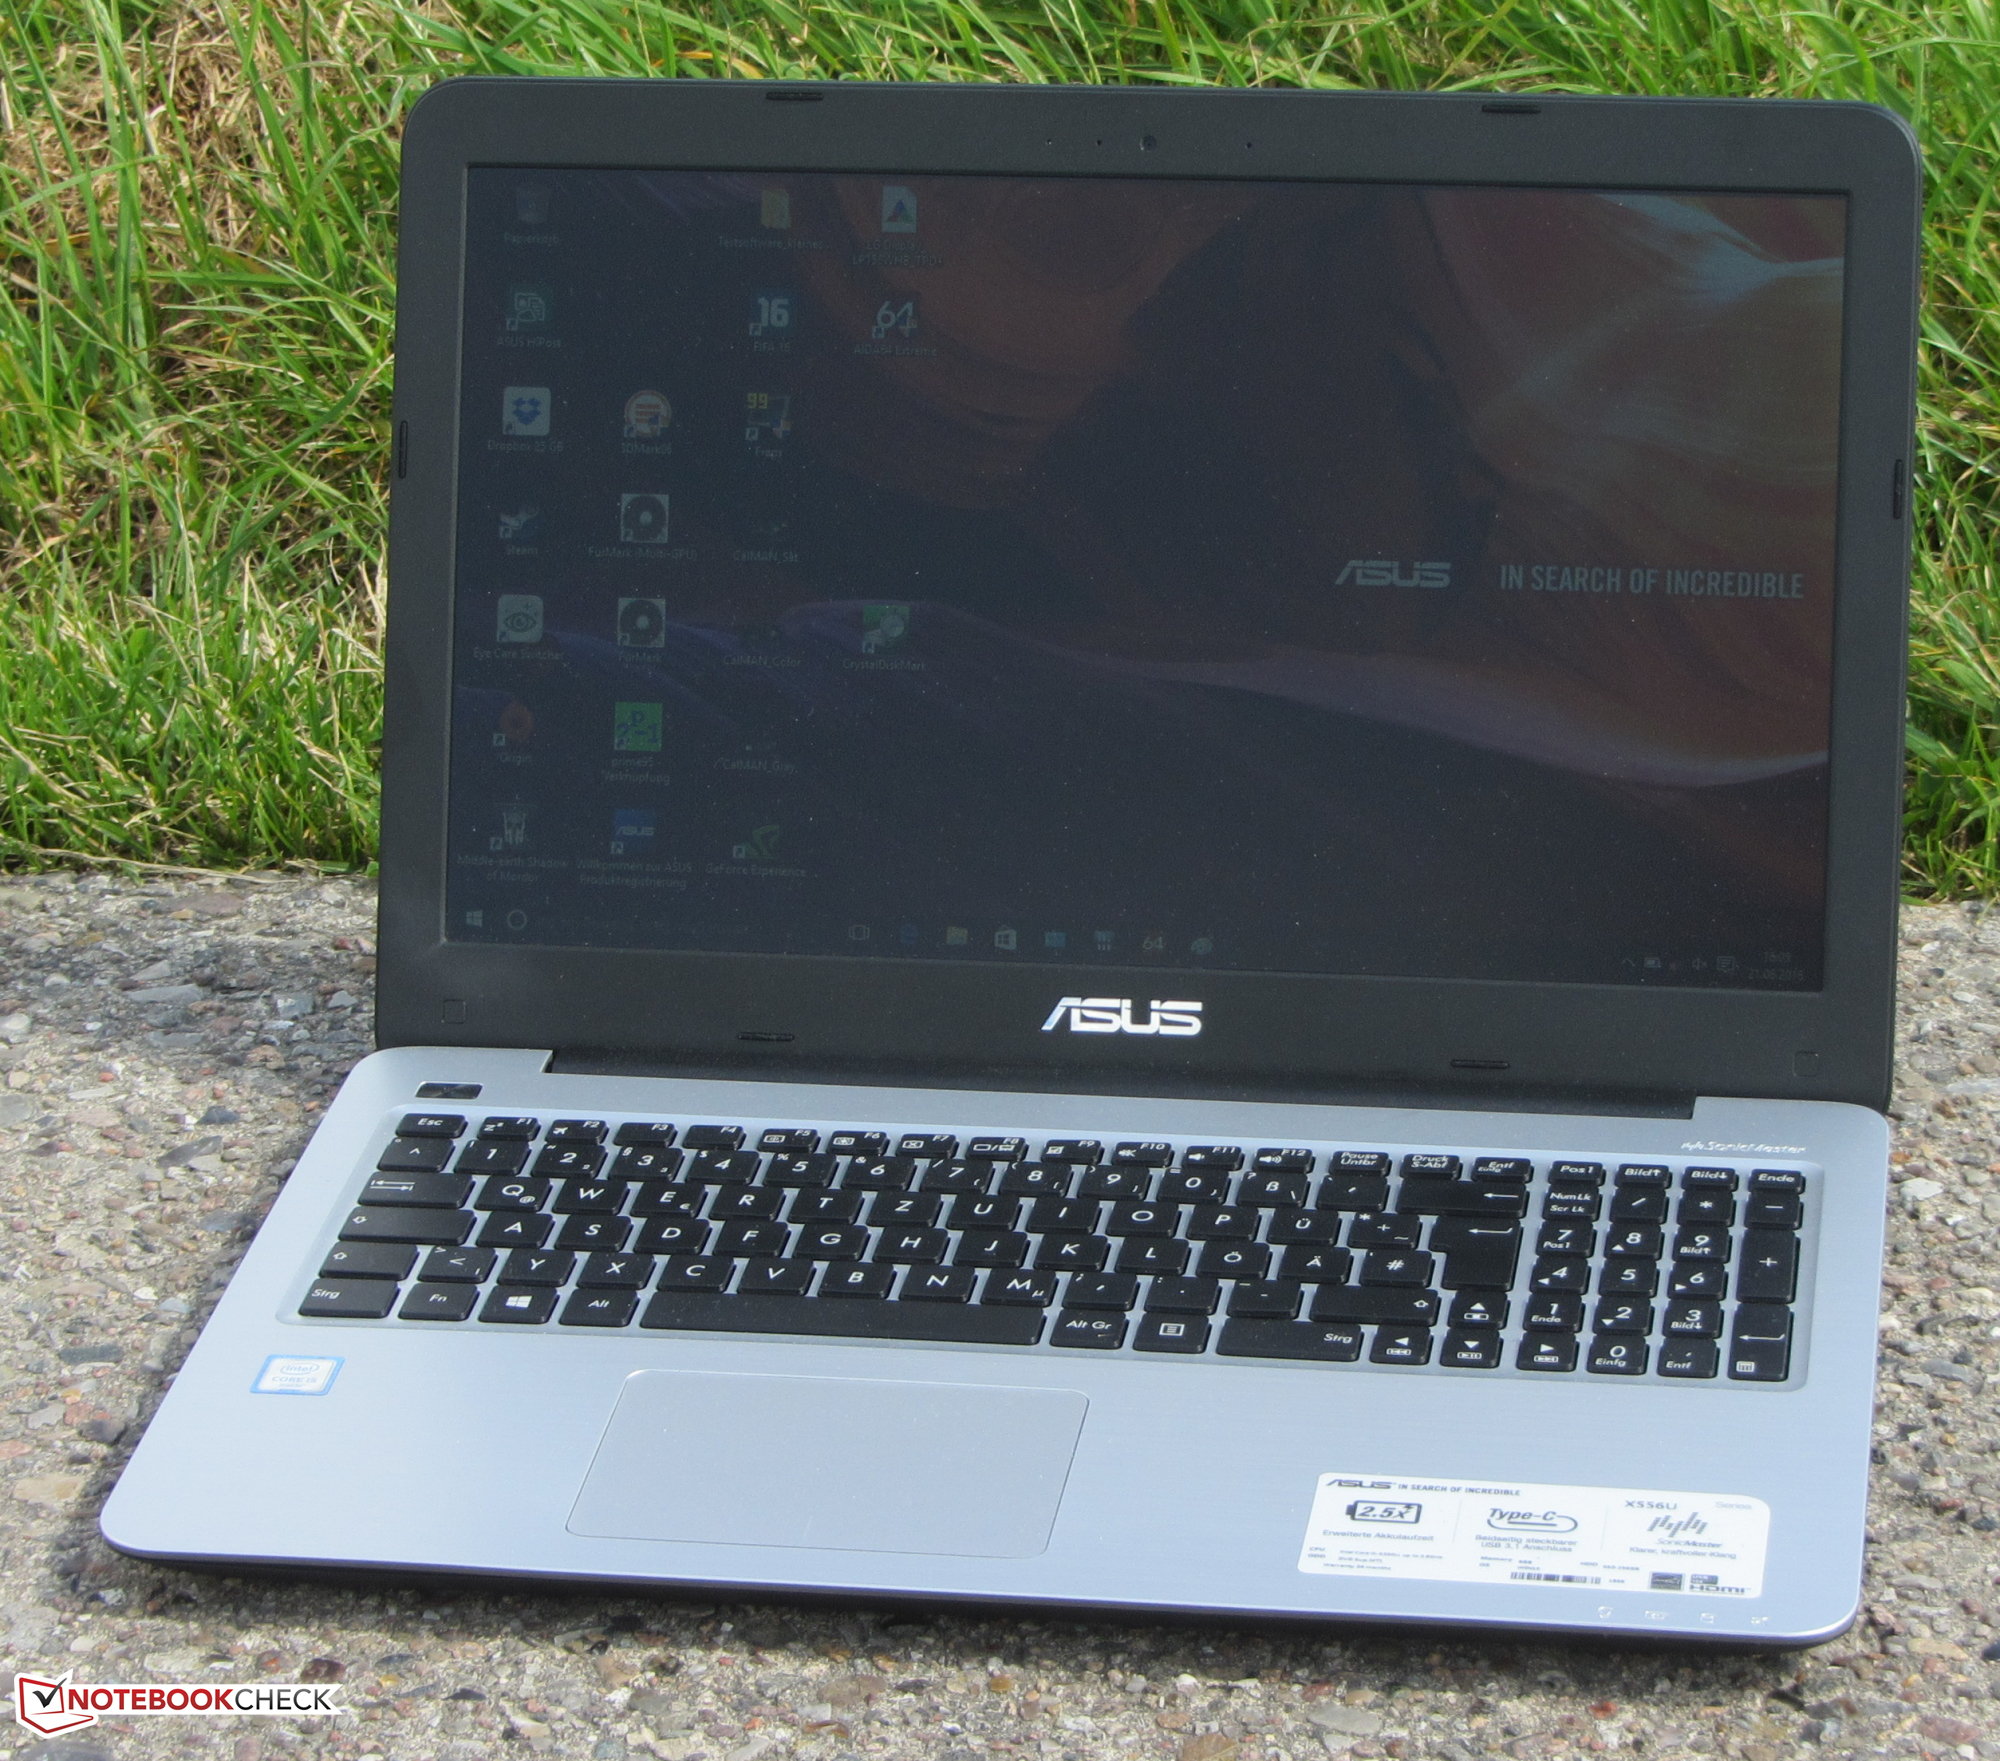 ASUS VIVOBOOK X556UQK WINDOWS 7 X64 DRIVER DOWNLOAD